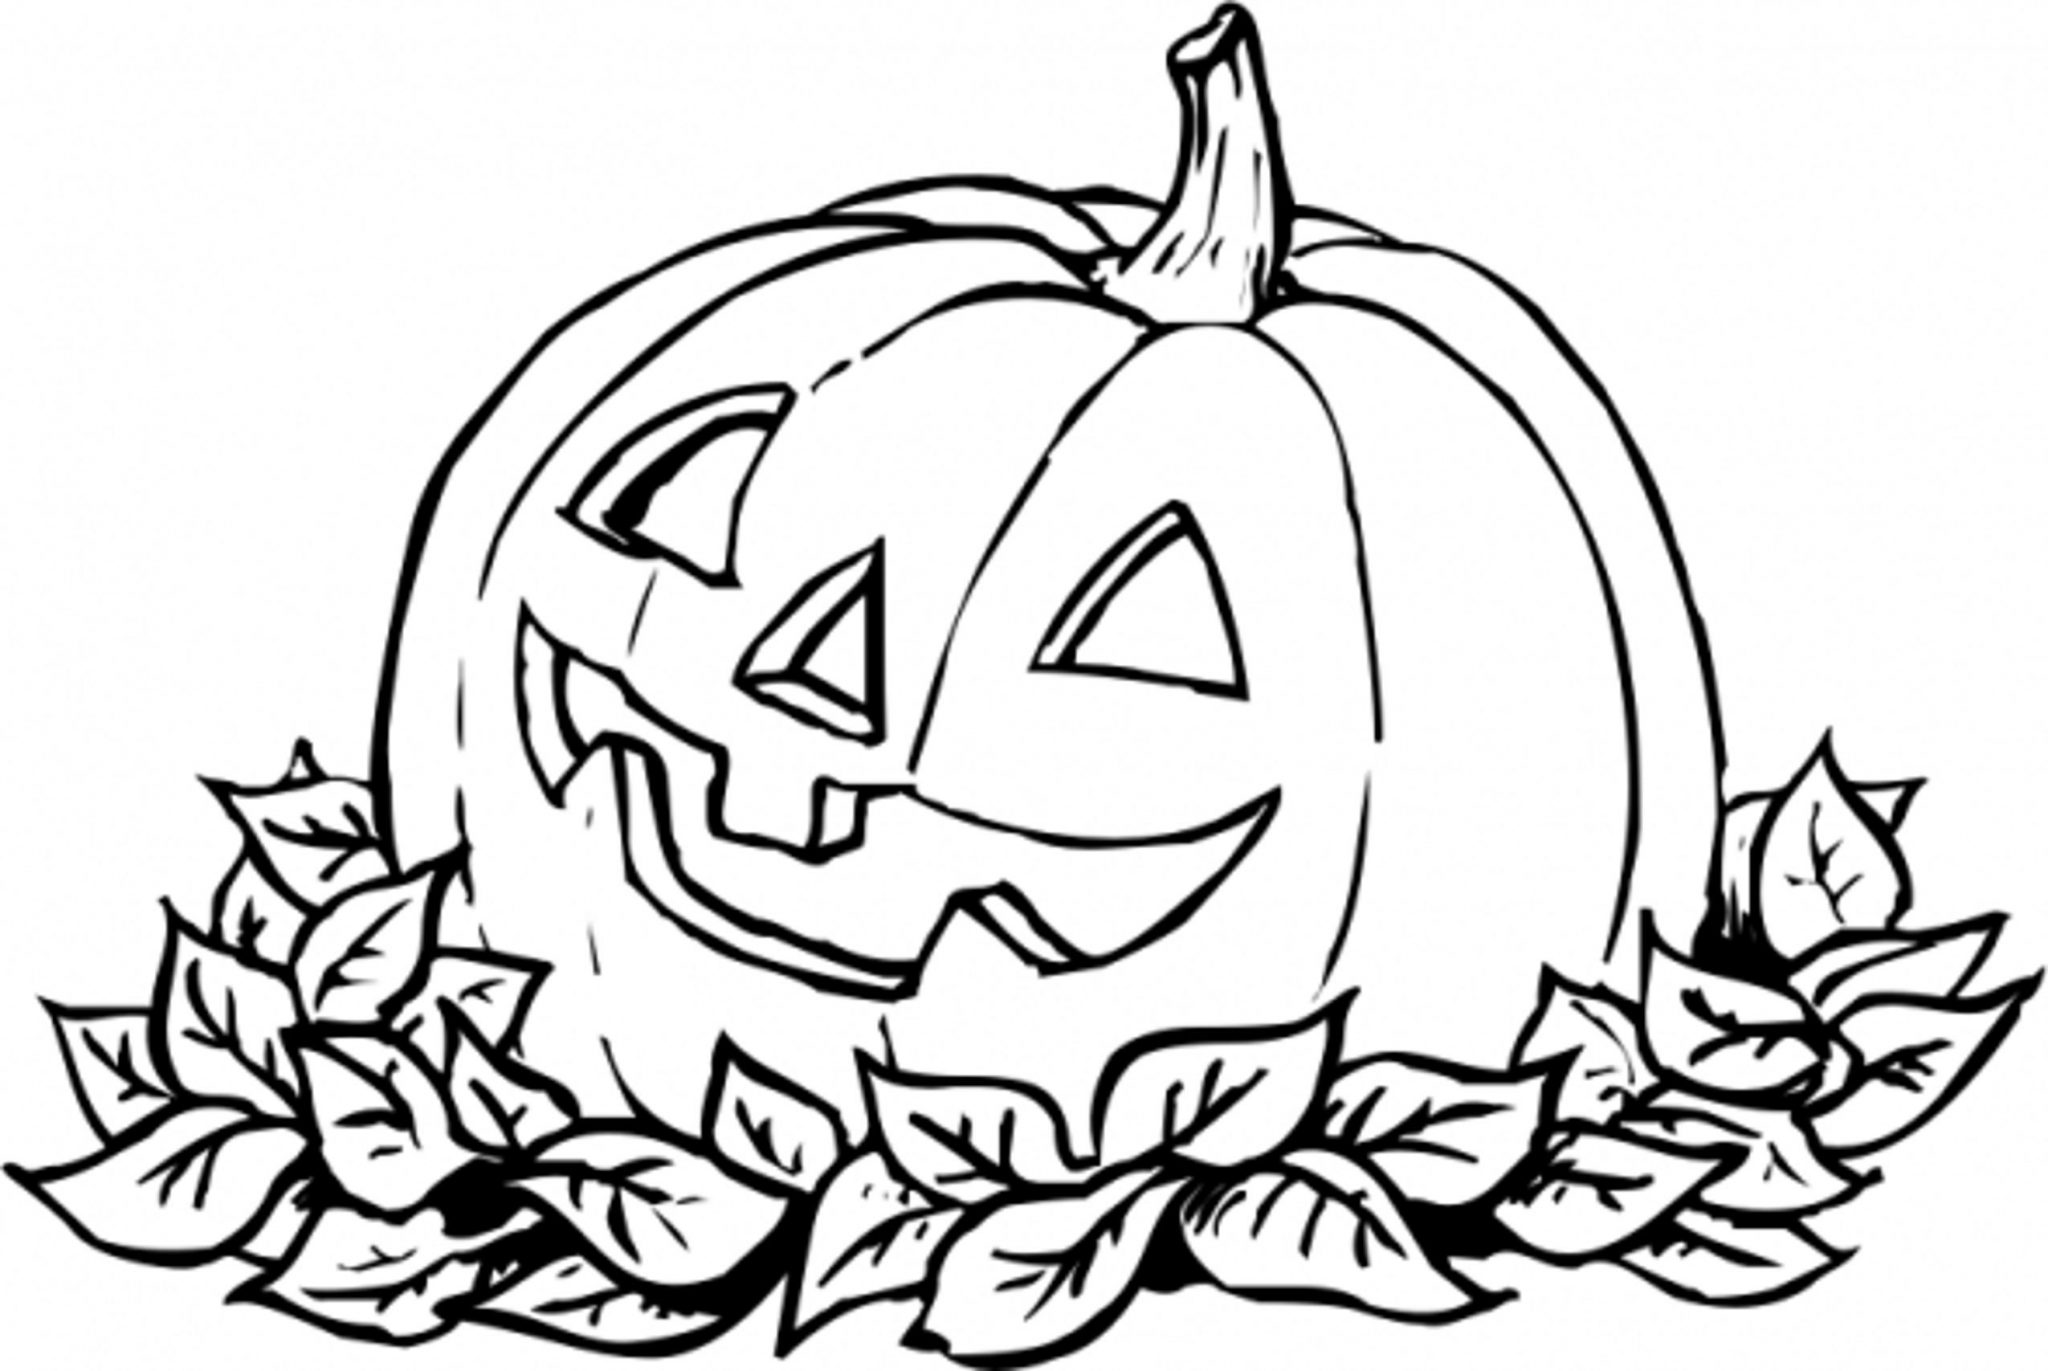 coloring page of a pumpkin pumpkin drawing for kids at getdrawings free download of coloring a pumpkin page